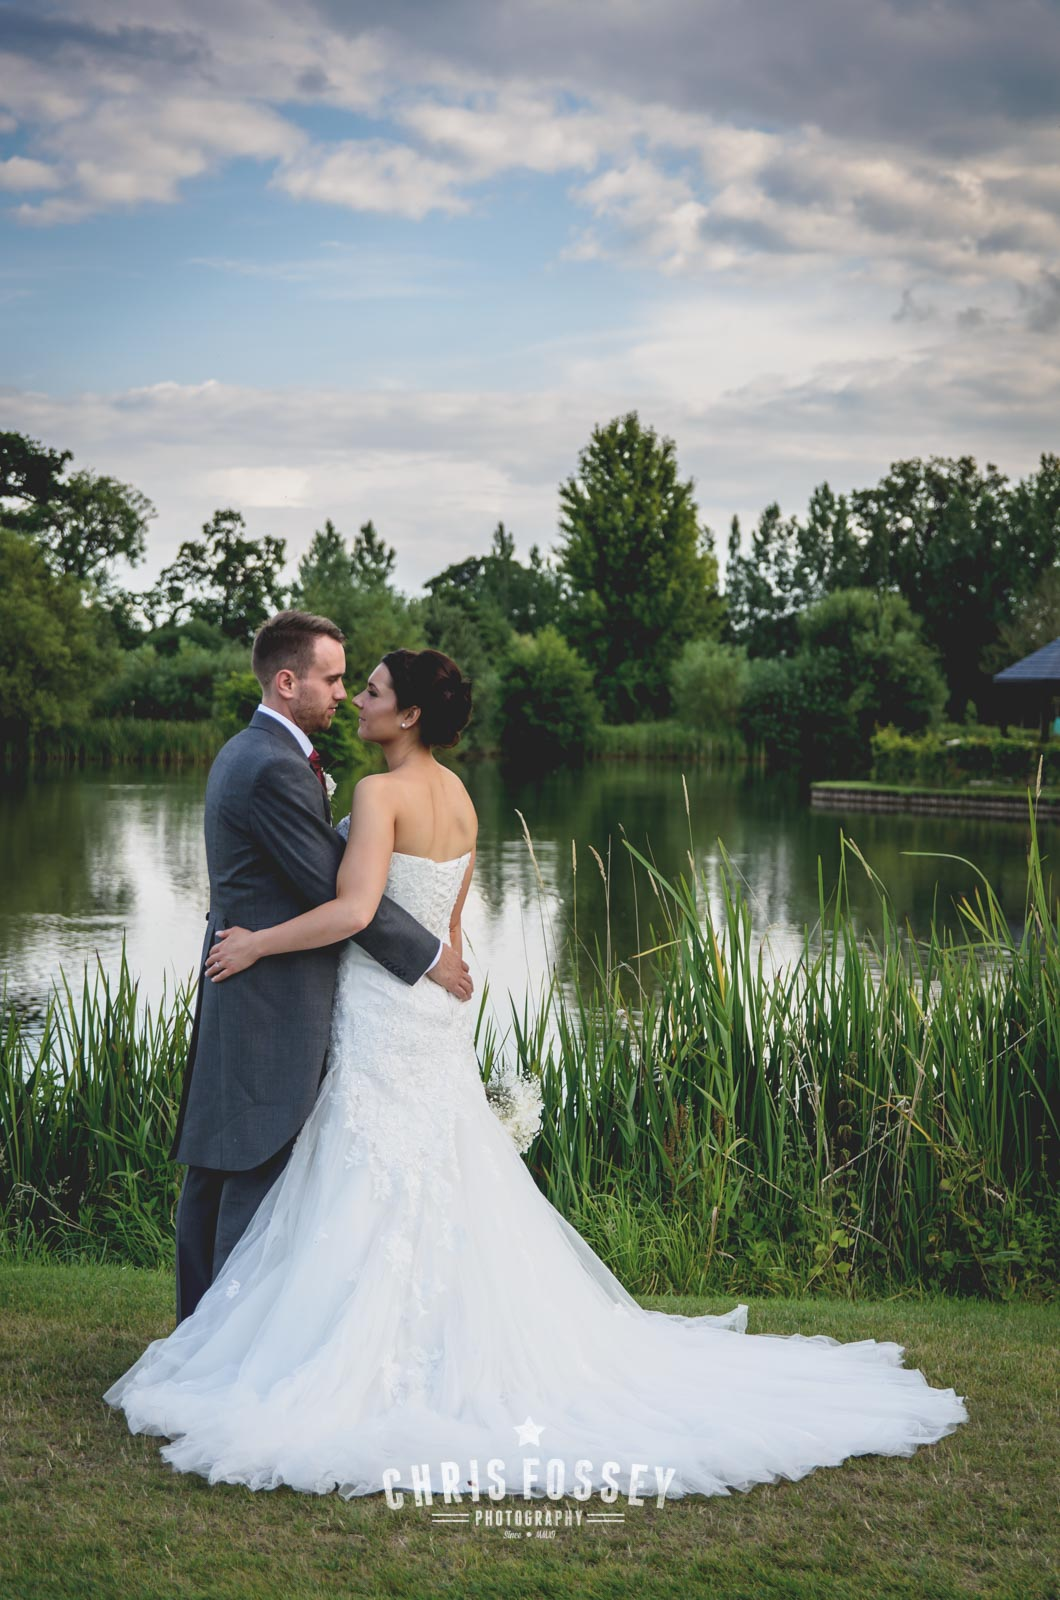 Ardencote Warwickshire Wedding Photography by Chris Fossey Photography (1 of 2)